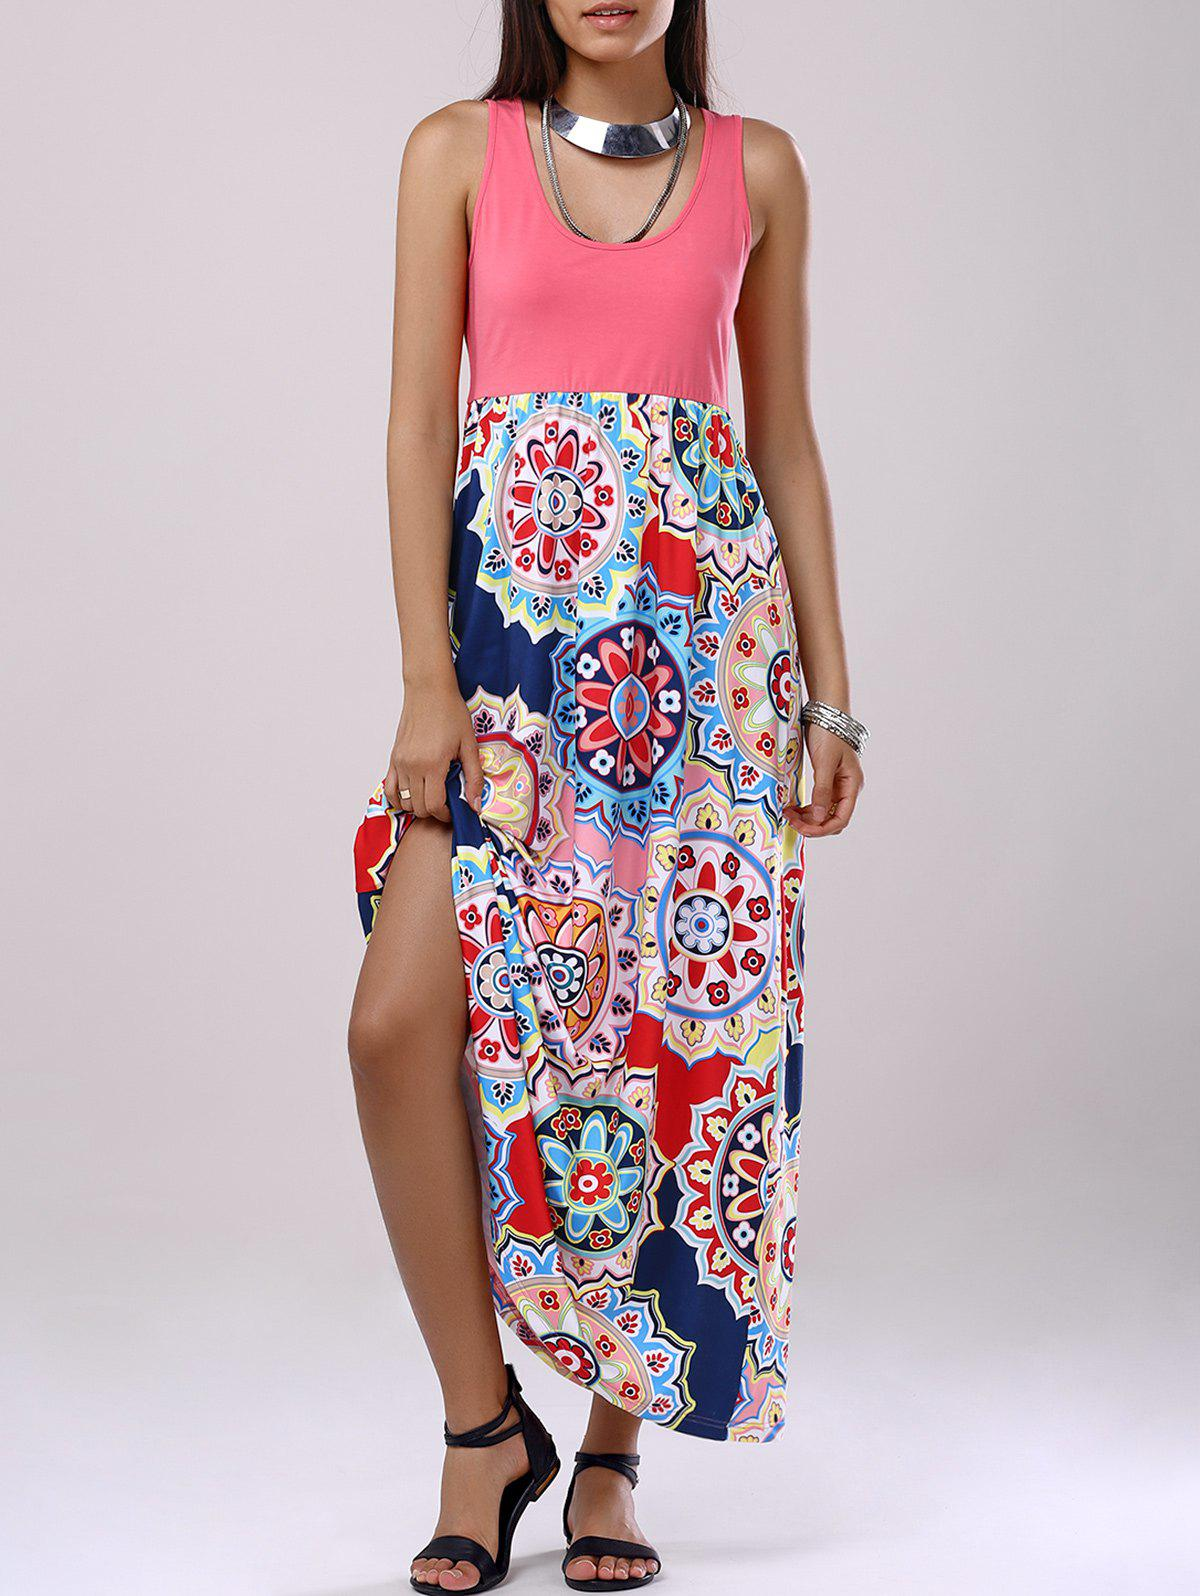 Bohemian Woman's U-Neck Splice Printing Dress